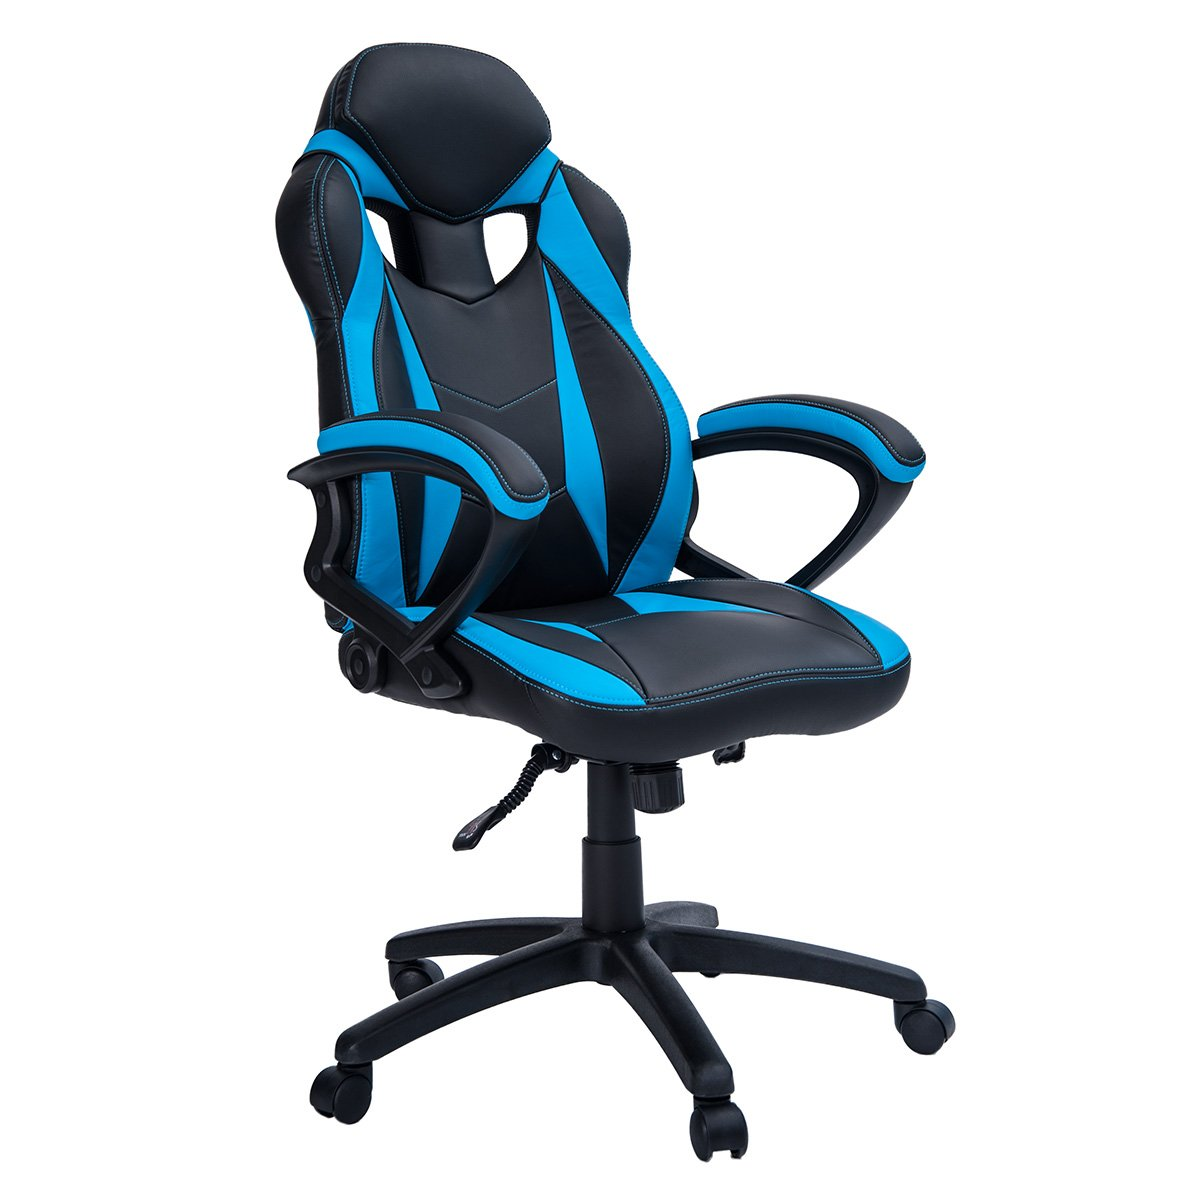 Banana game chair - Merax Ergonomic Racing Style Pu Leather Gaming Chair For Home And Office Blue